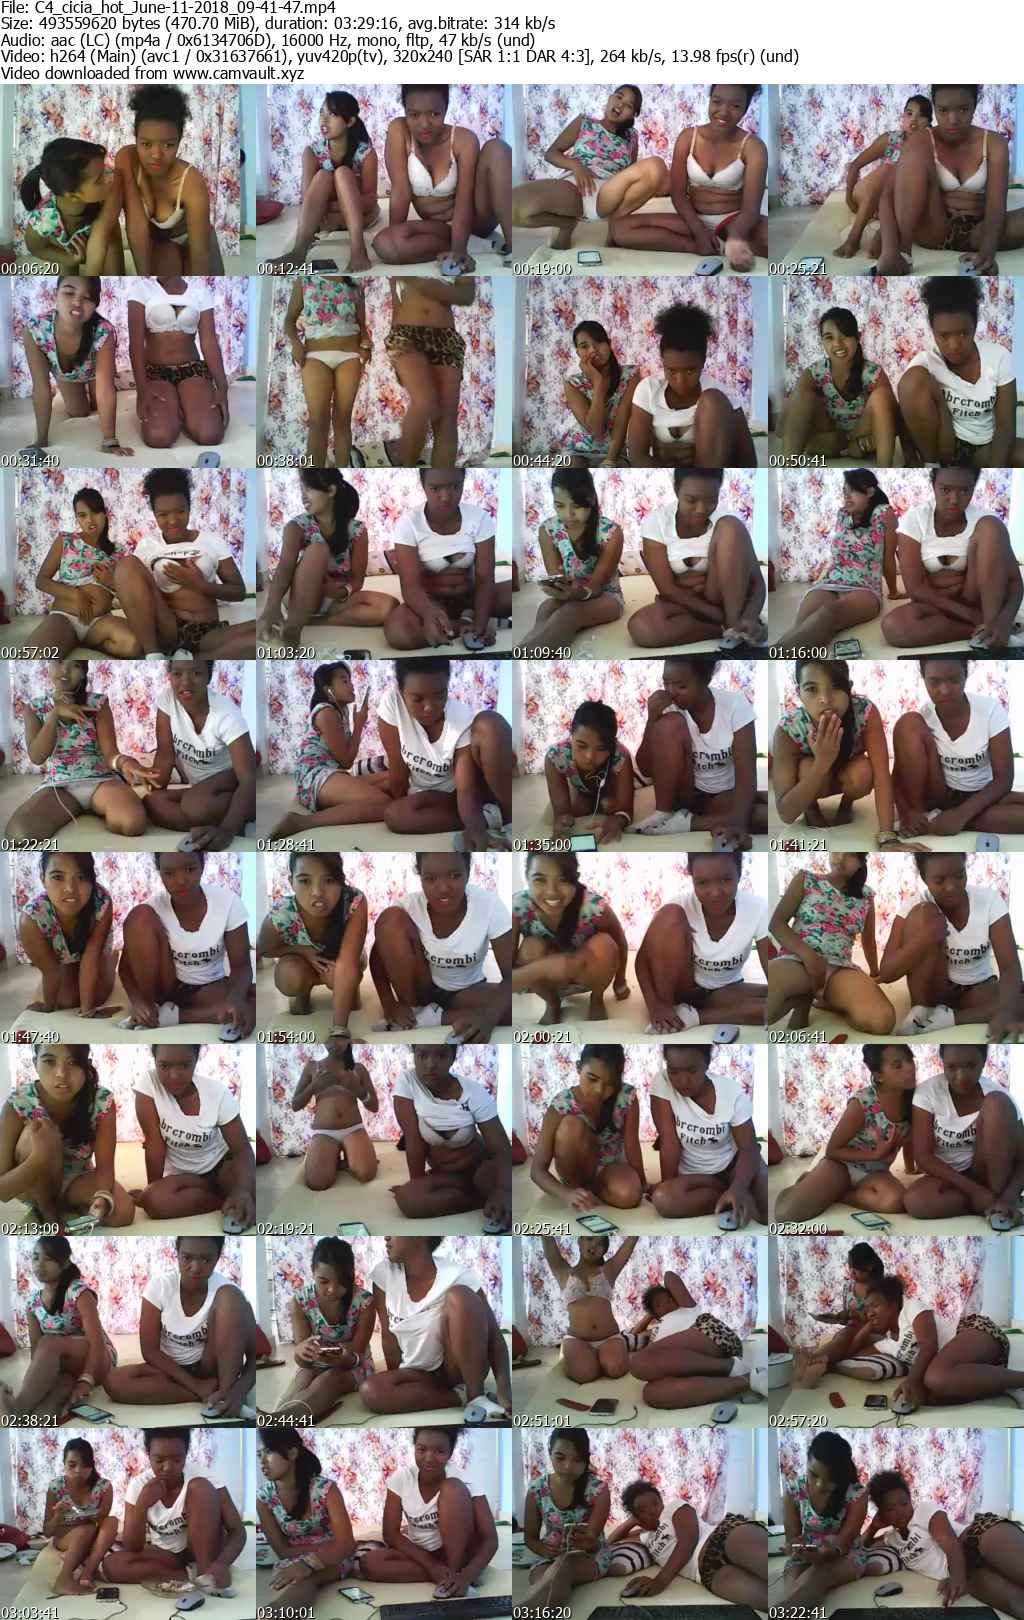 Video preview for model cicia_hot